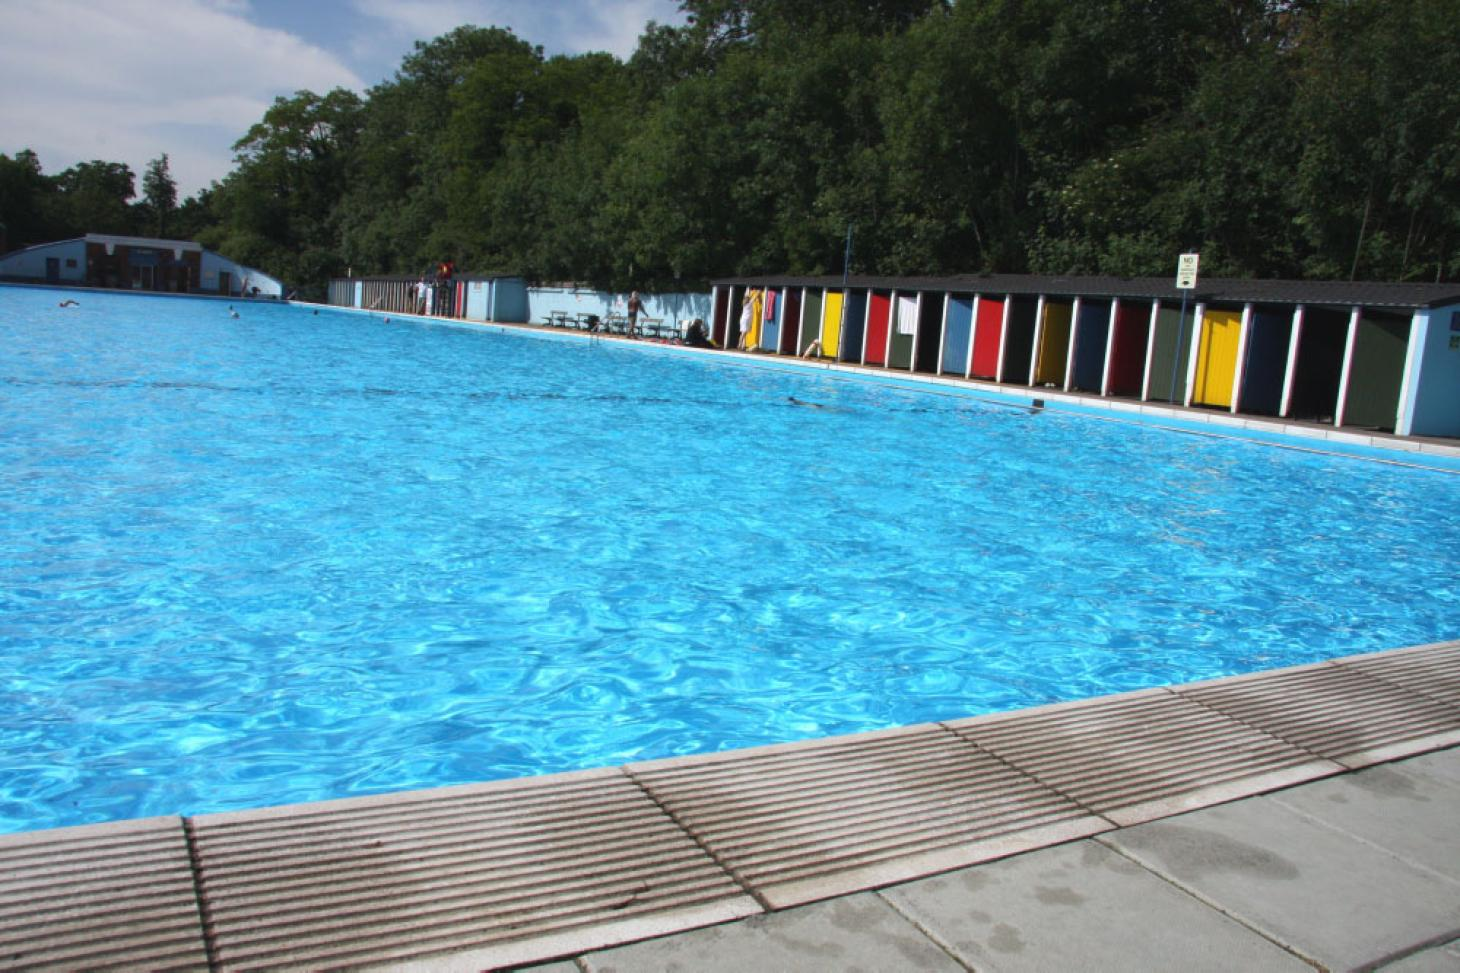 Tooting Bec Lido Outdoor swimming pool